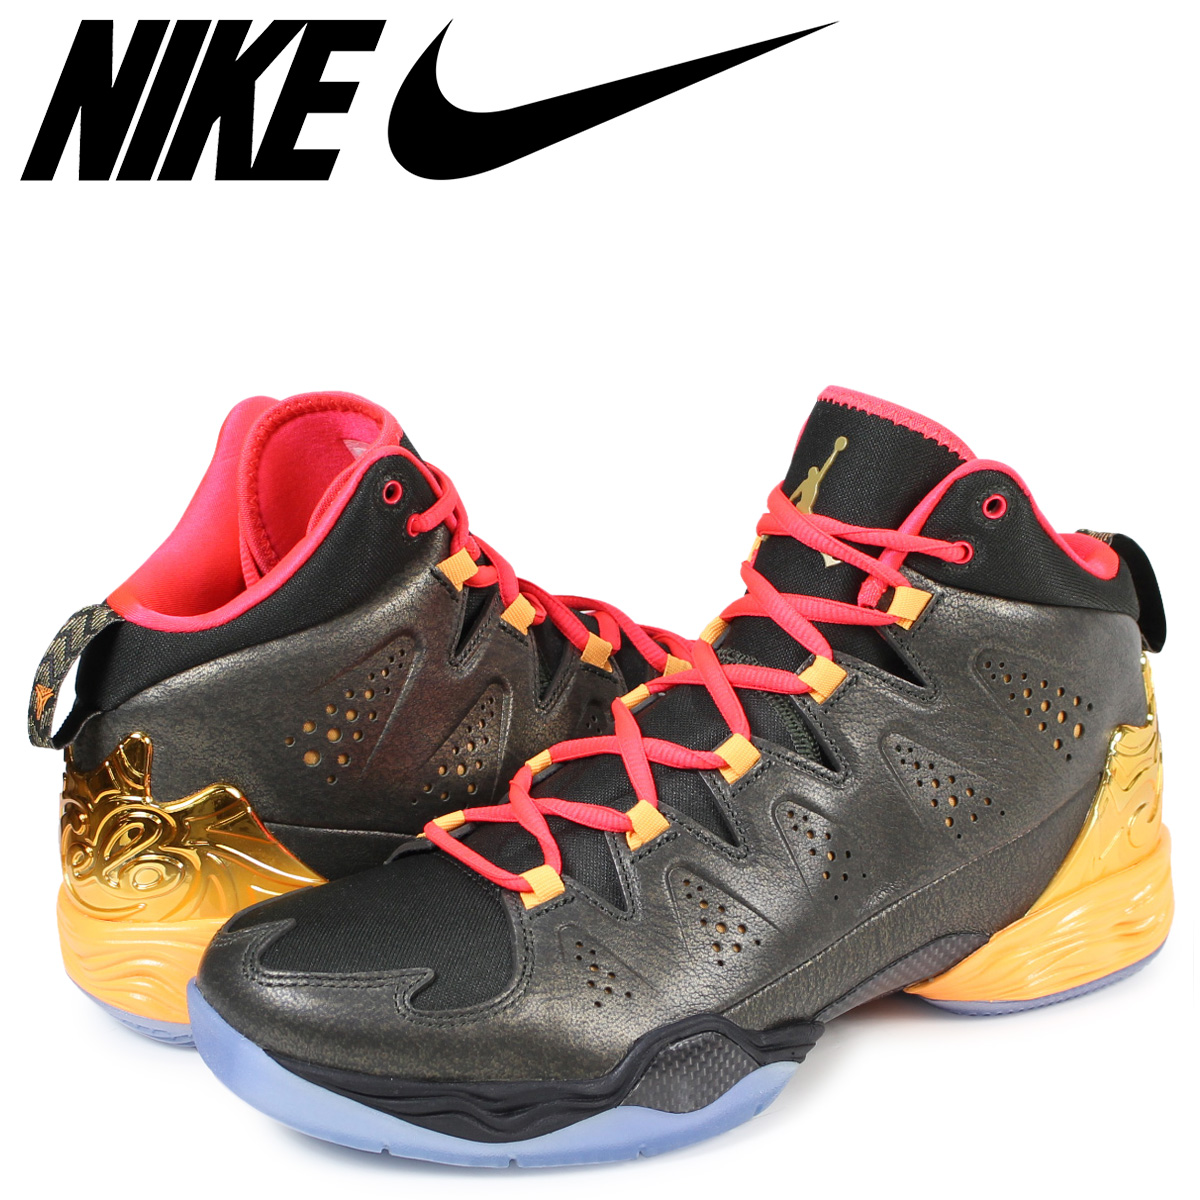 best sneakers c89fa 7cd95 ... promo code for nike jordan melo nike air jordan sneakers m10 jordan melo  656325 323 black